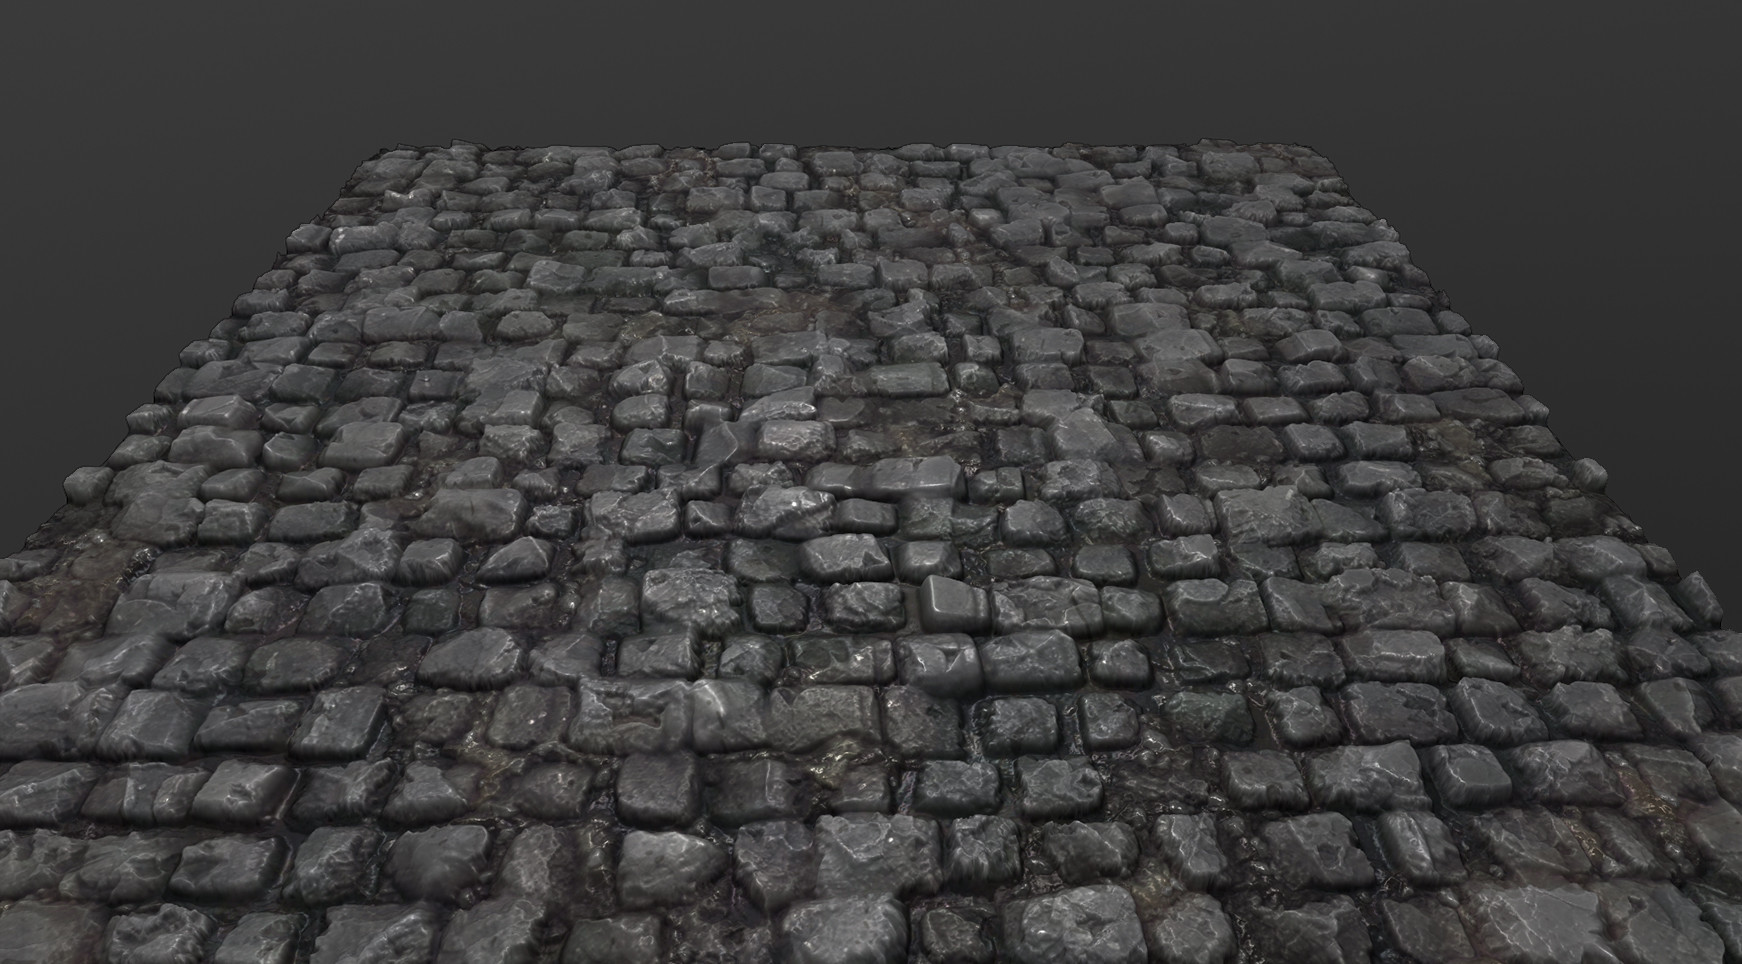 scroll to see more medieval stone floor texture91 floor